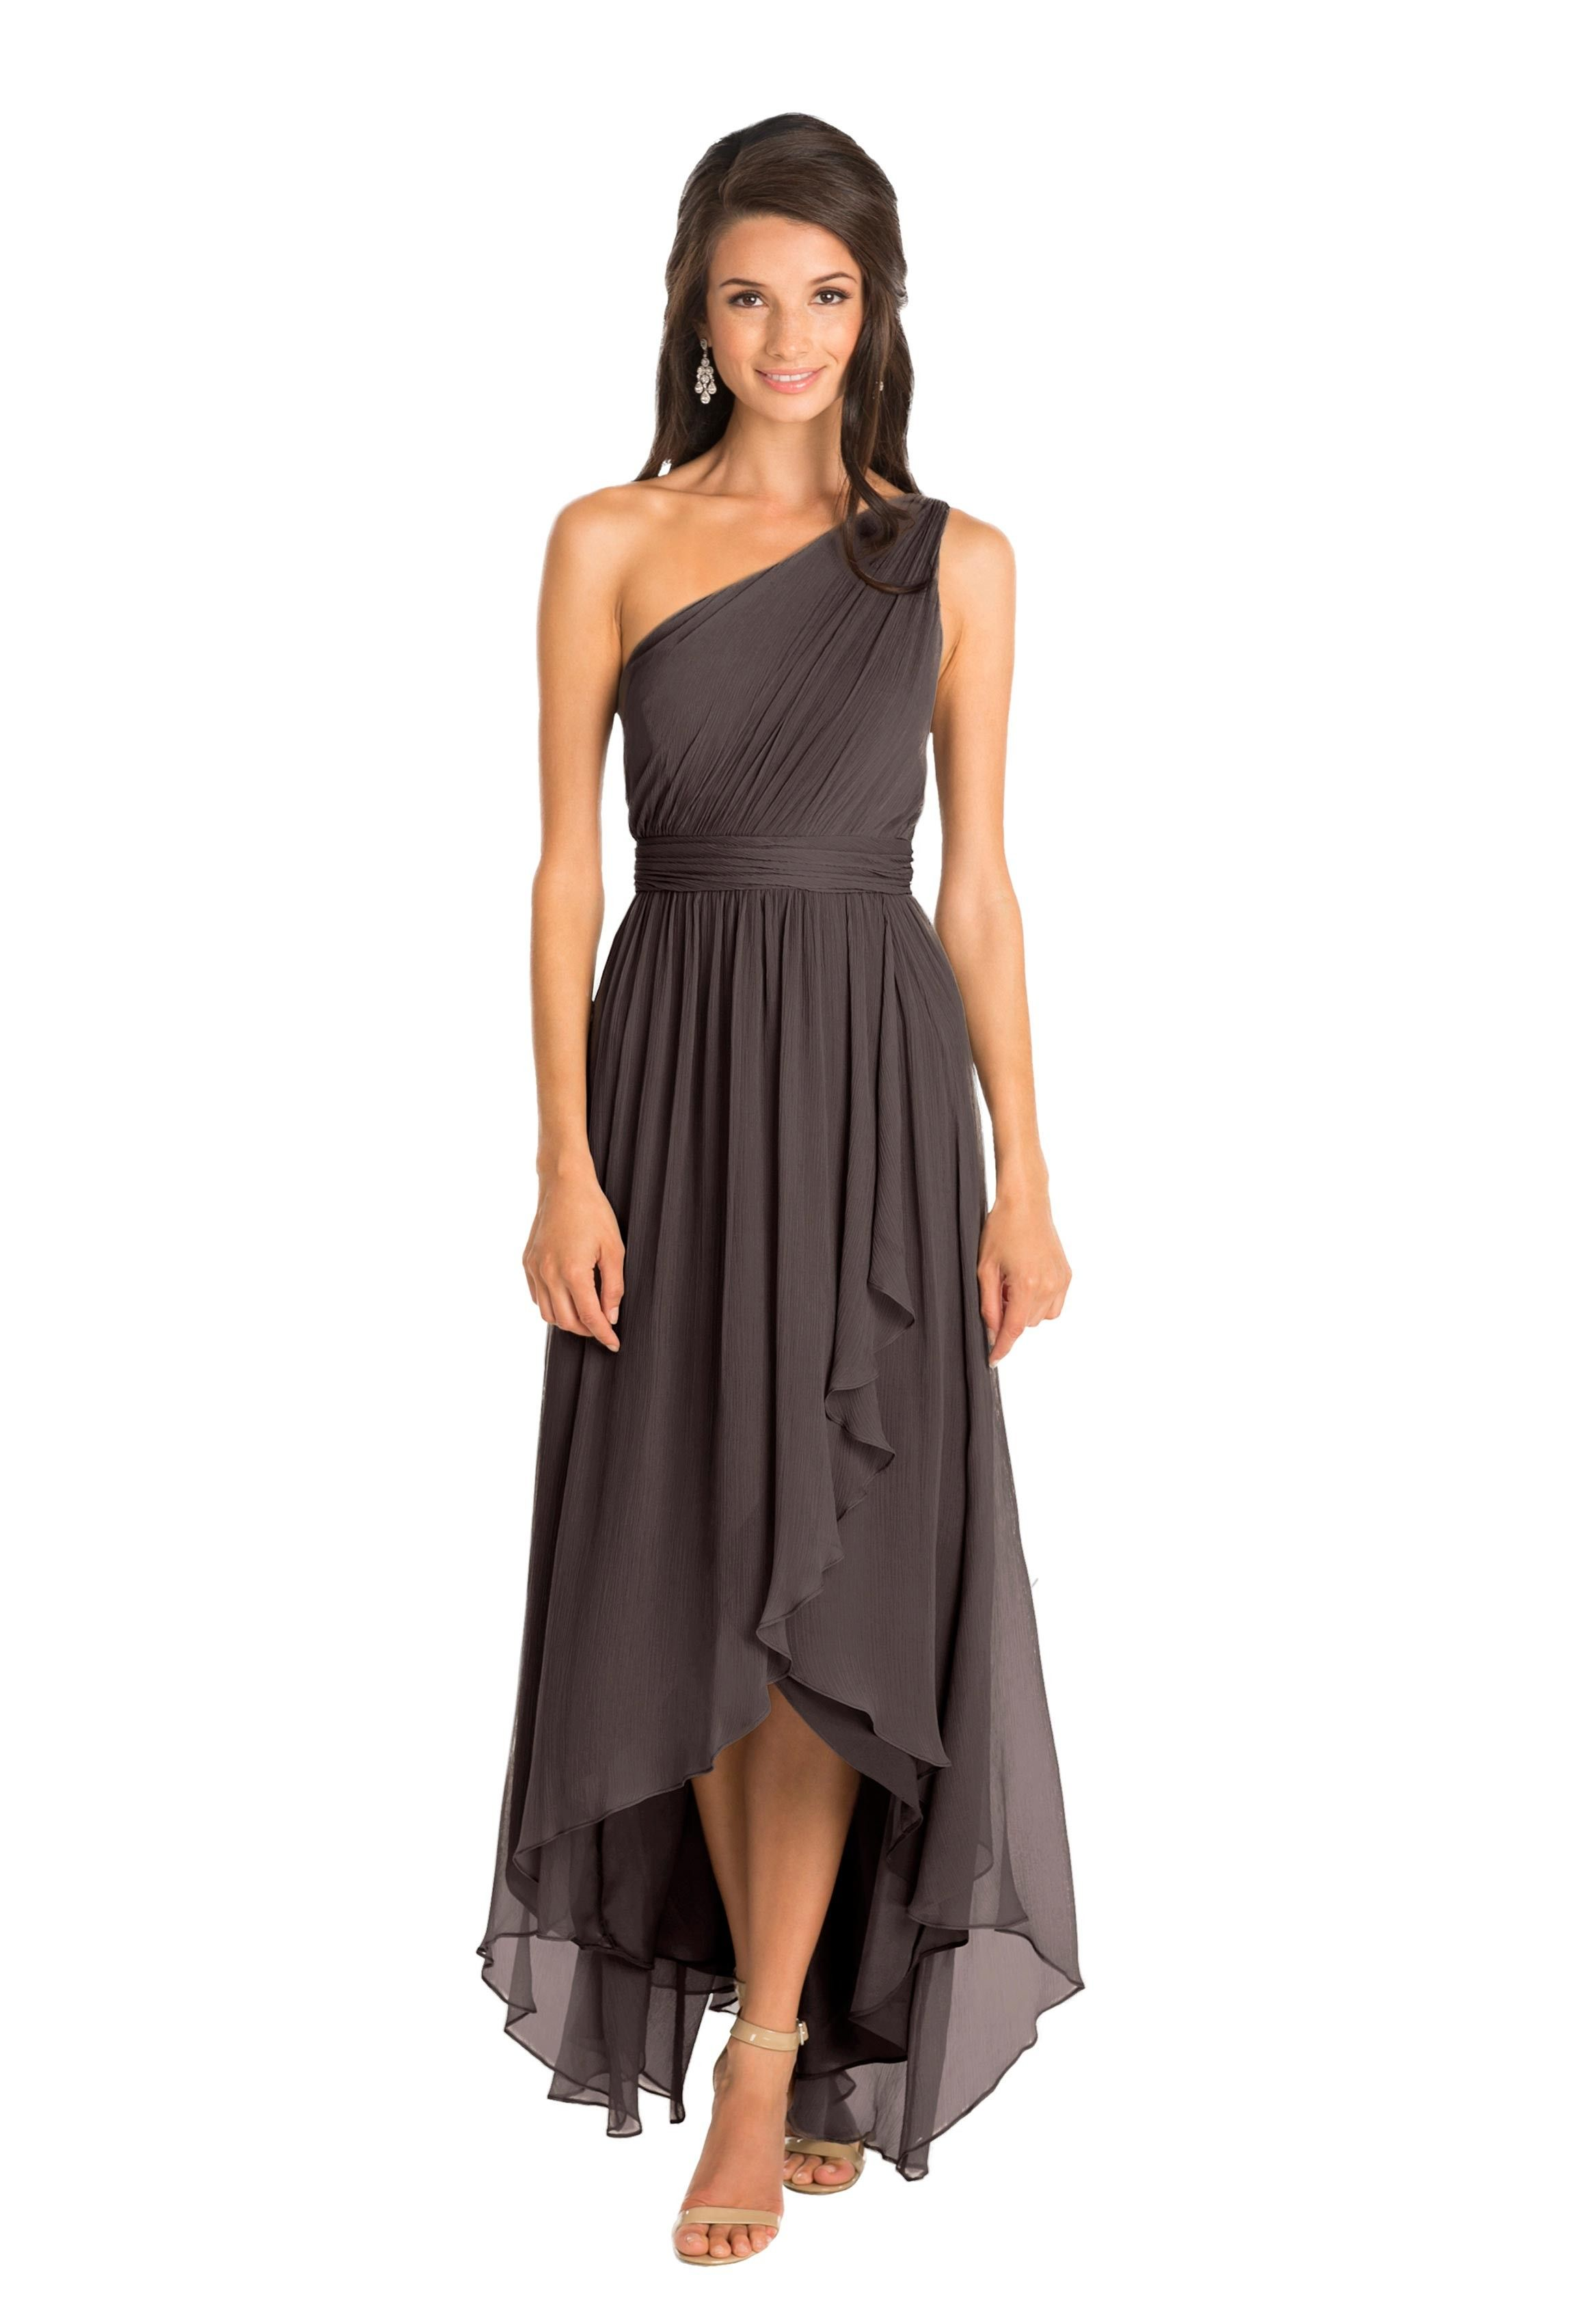 Chiffon One Shoulder Bridesmaid Dress By Jenny Yoo Asymmetrical Hemline High Low In Graphite Gray Neutral